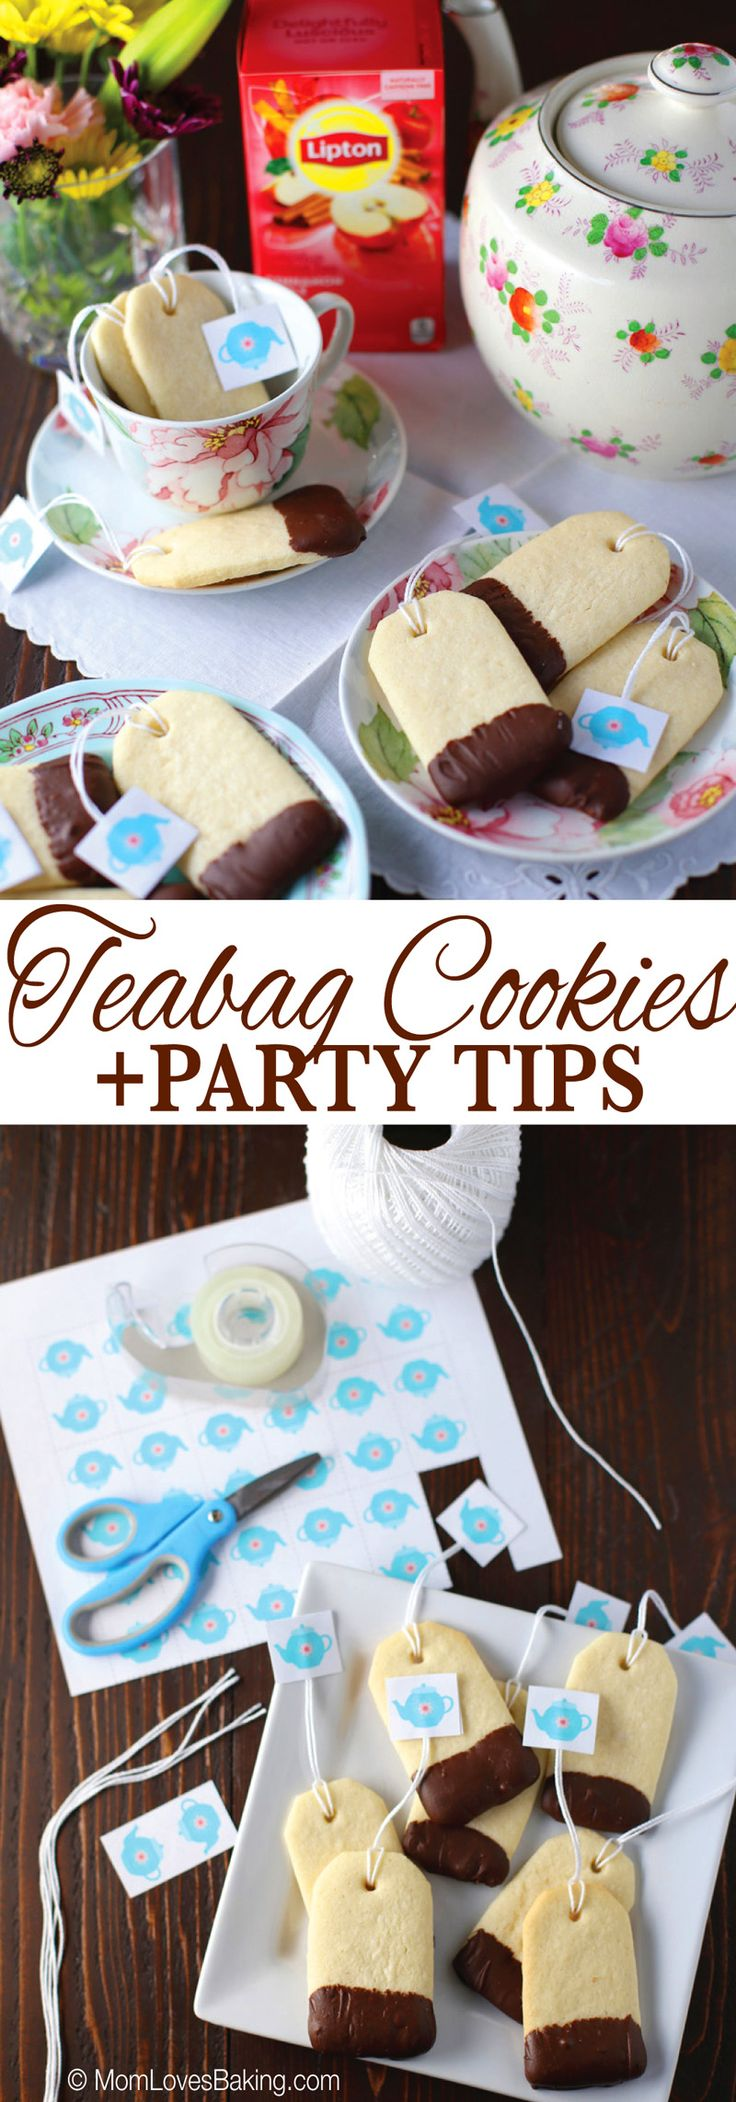 Host a ladies tea party, plus how to make these adorable Teabag Cookies! #LiptonTeaTime #Sponsored